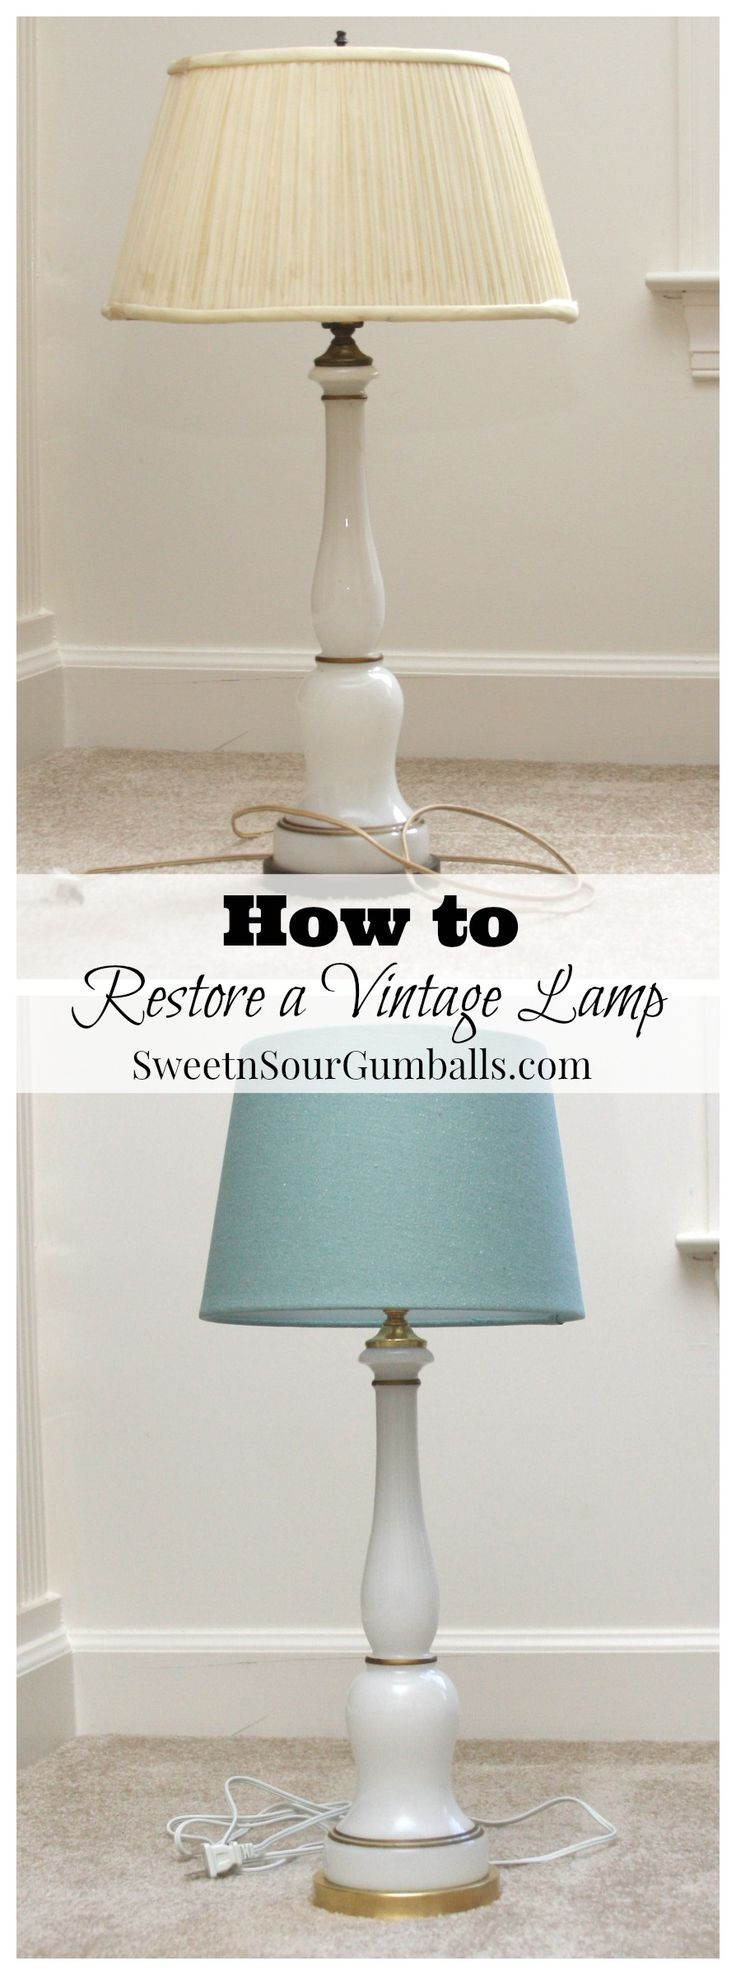 170 best Upholstery/lampshade makeovers images on Pinterest | Home ...